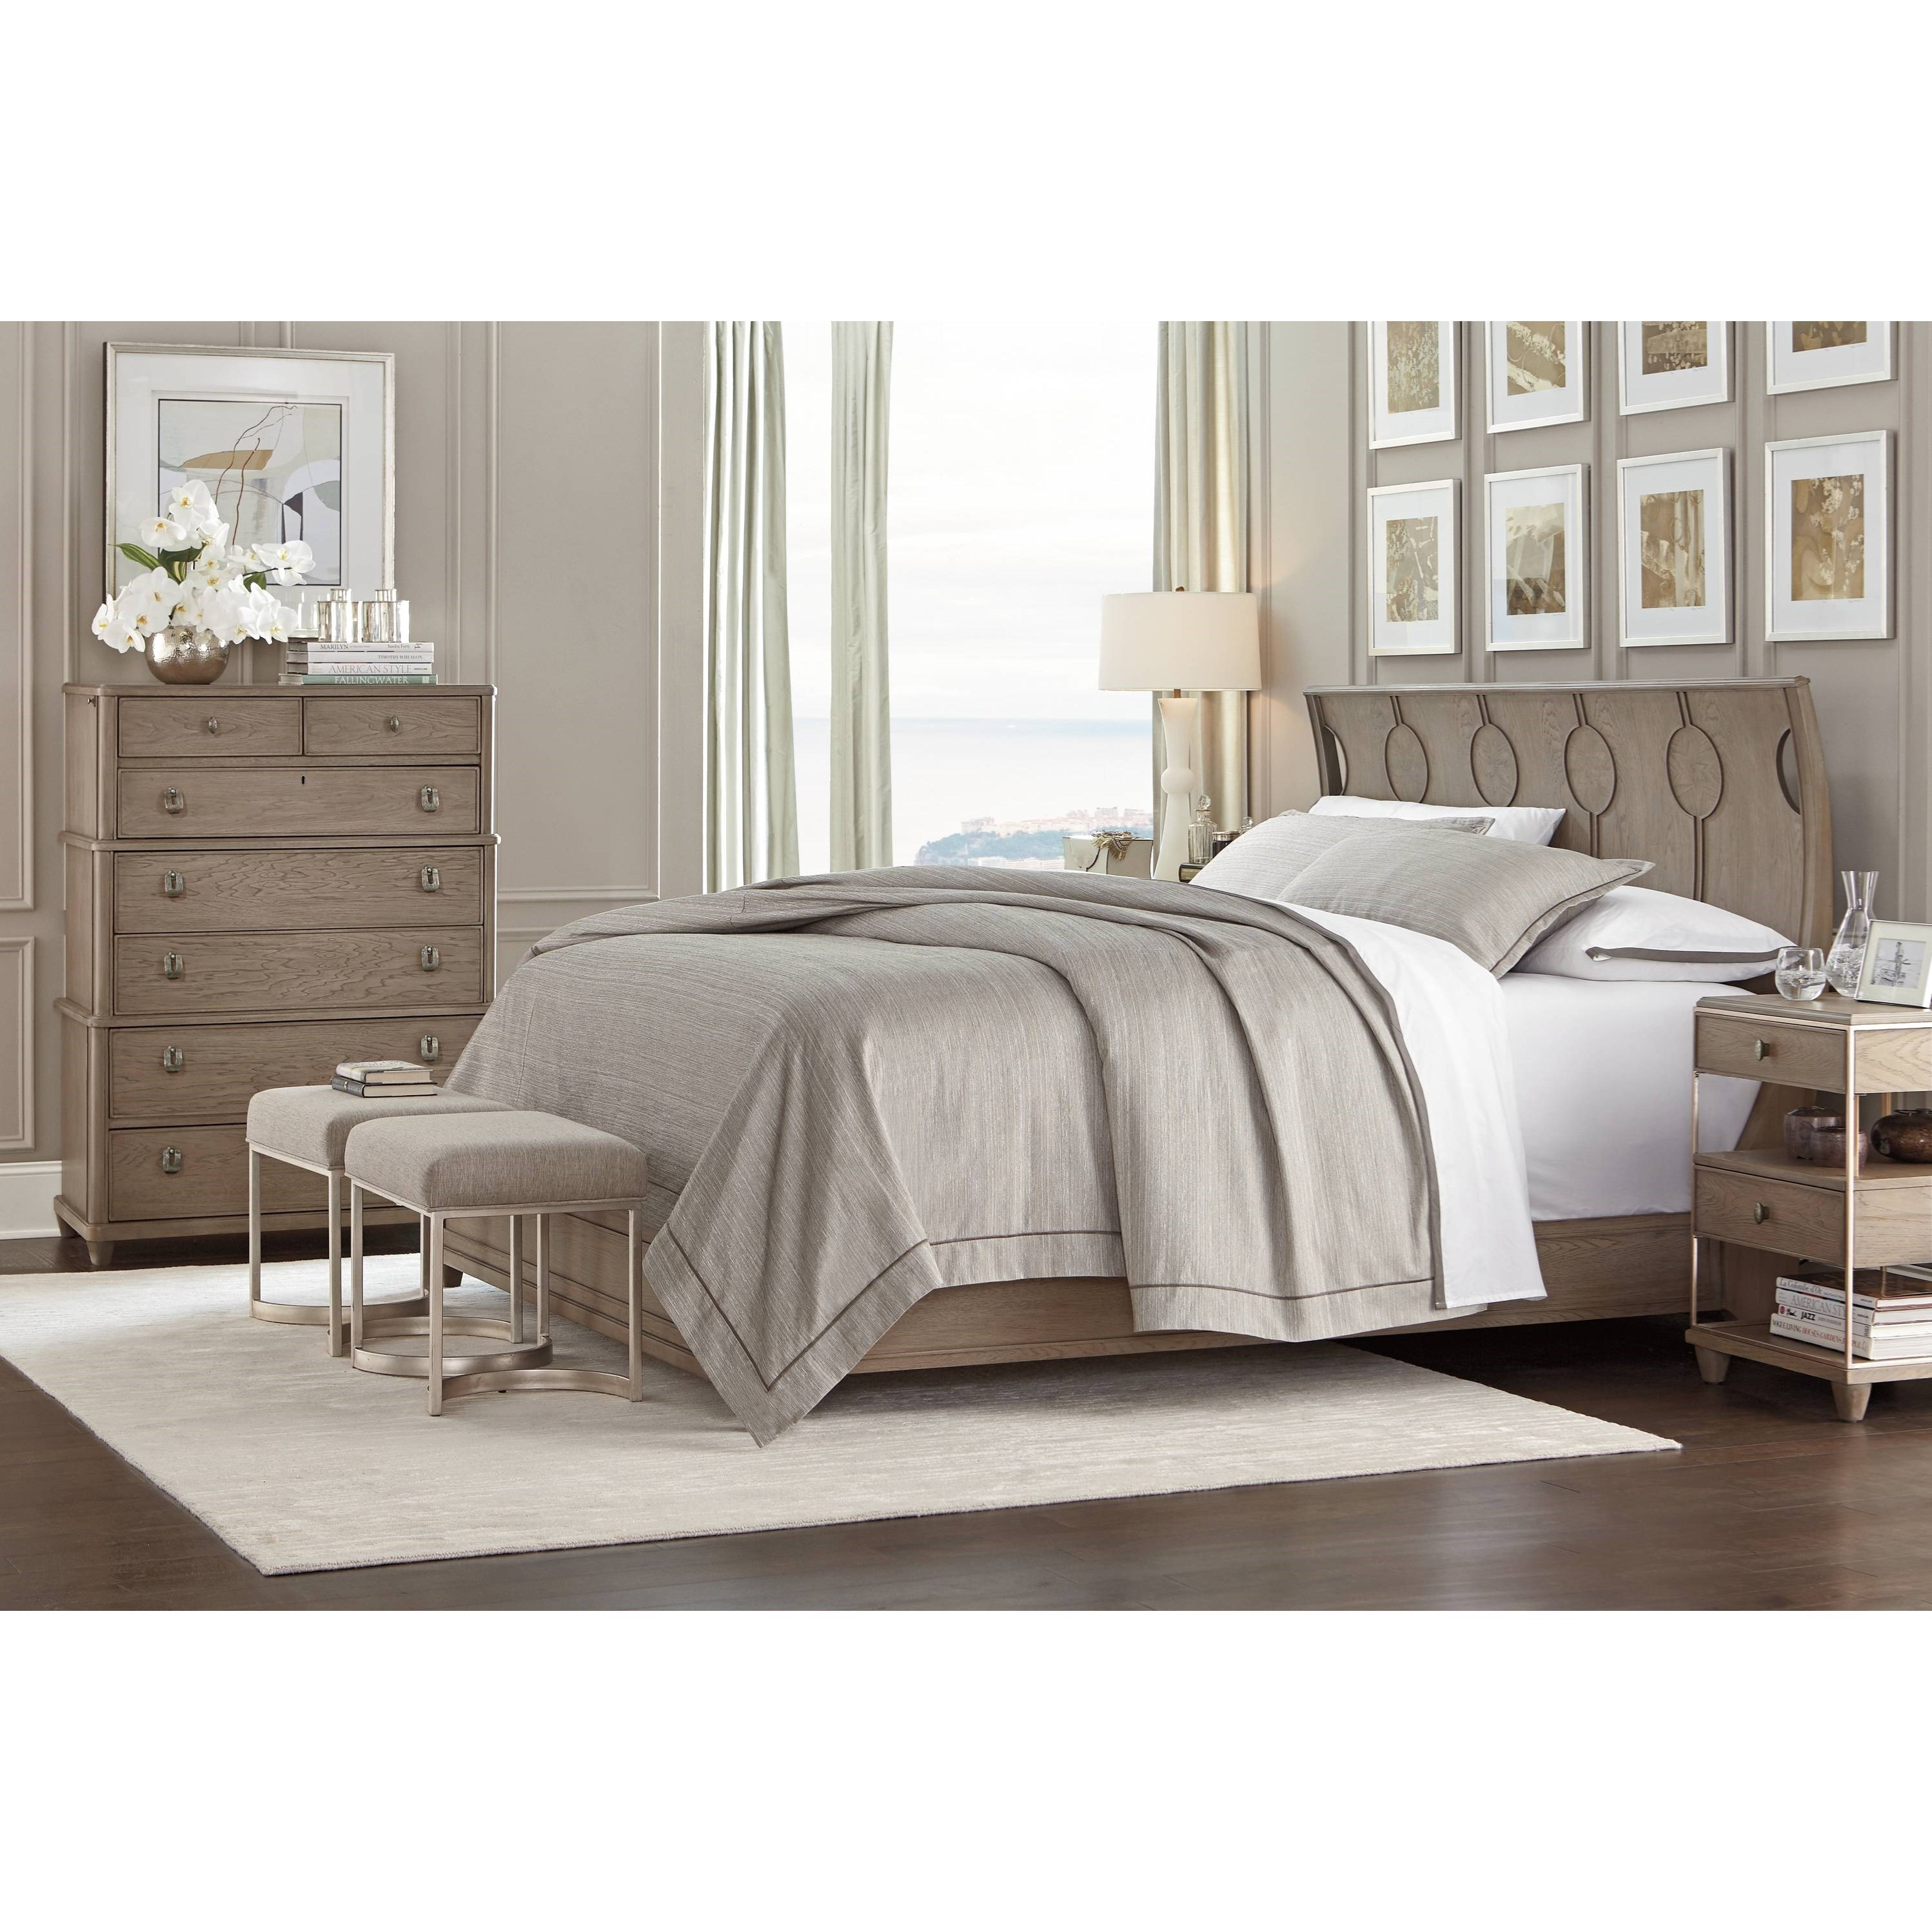 Stanley furniture virage queen bedroom group belfort for Bedroom furniture groups